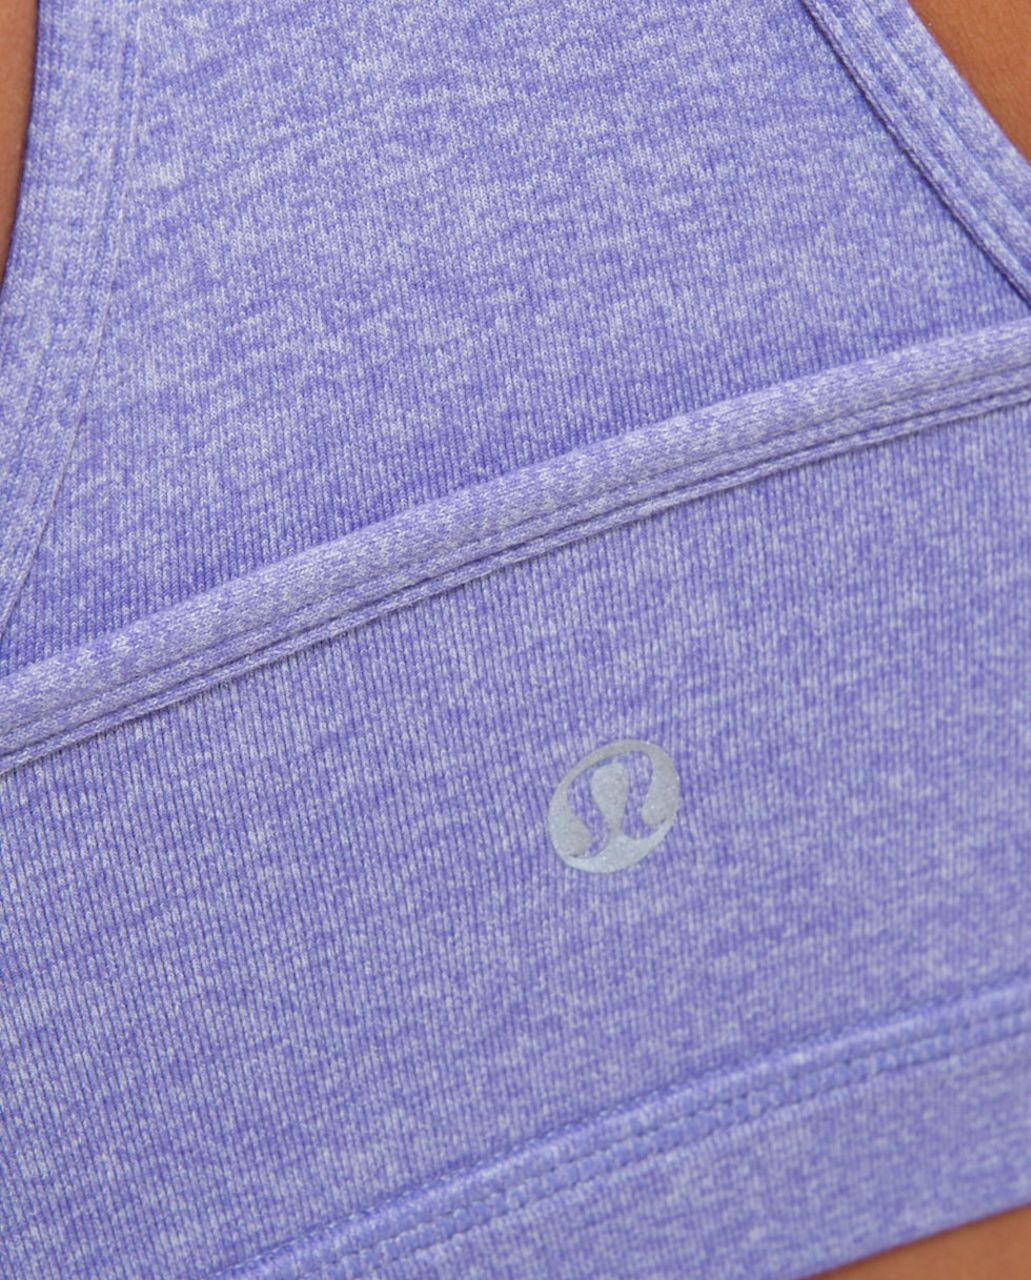 Lululemon Deep V Bra - Heathered Persian Purple